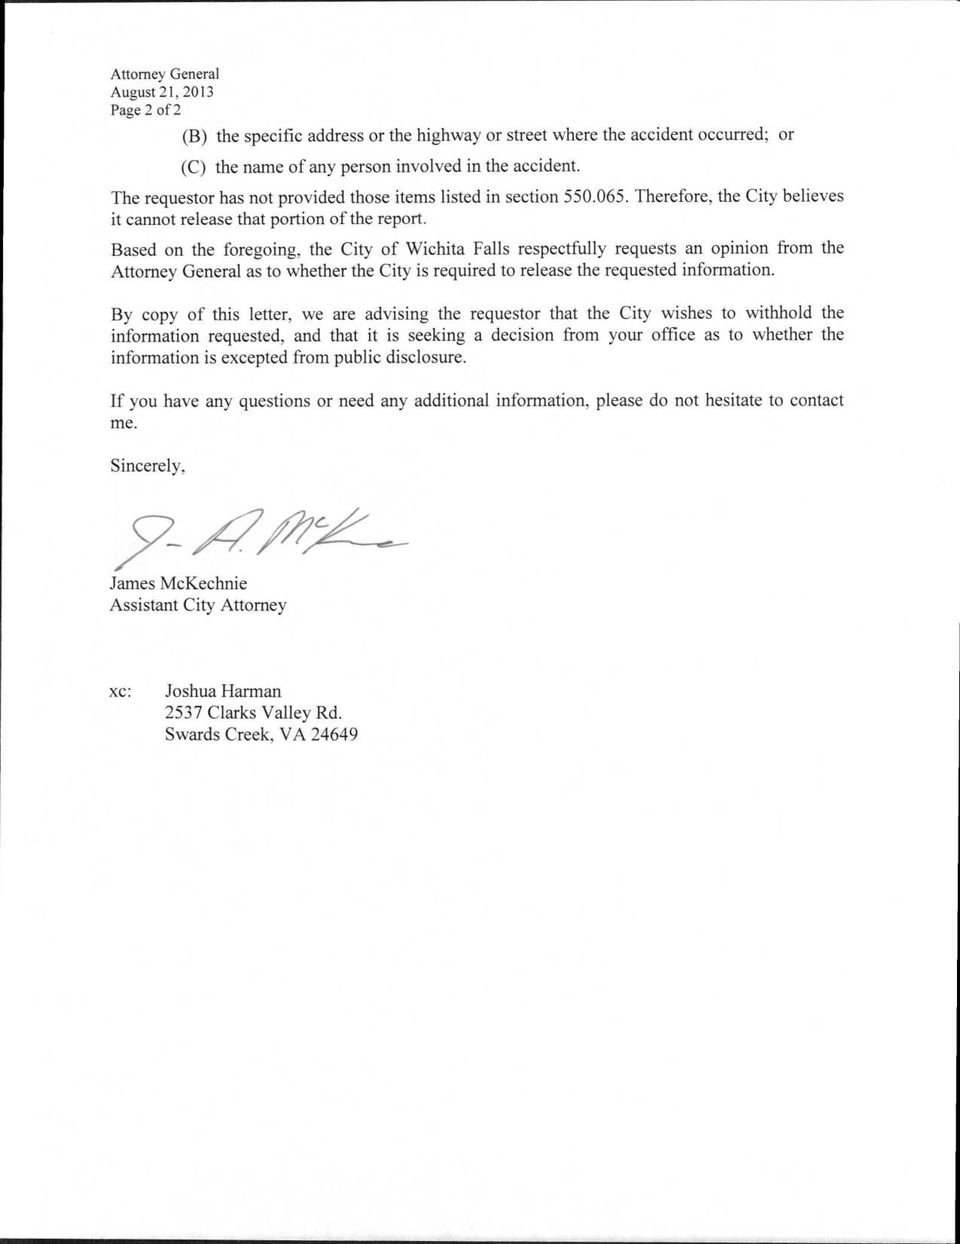 Based on the foregoing, the City of Wichita Falls respectfully requests an opinion from the Attorney General as to whether the City is required to release the requested information.